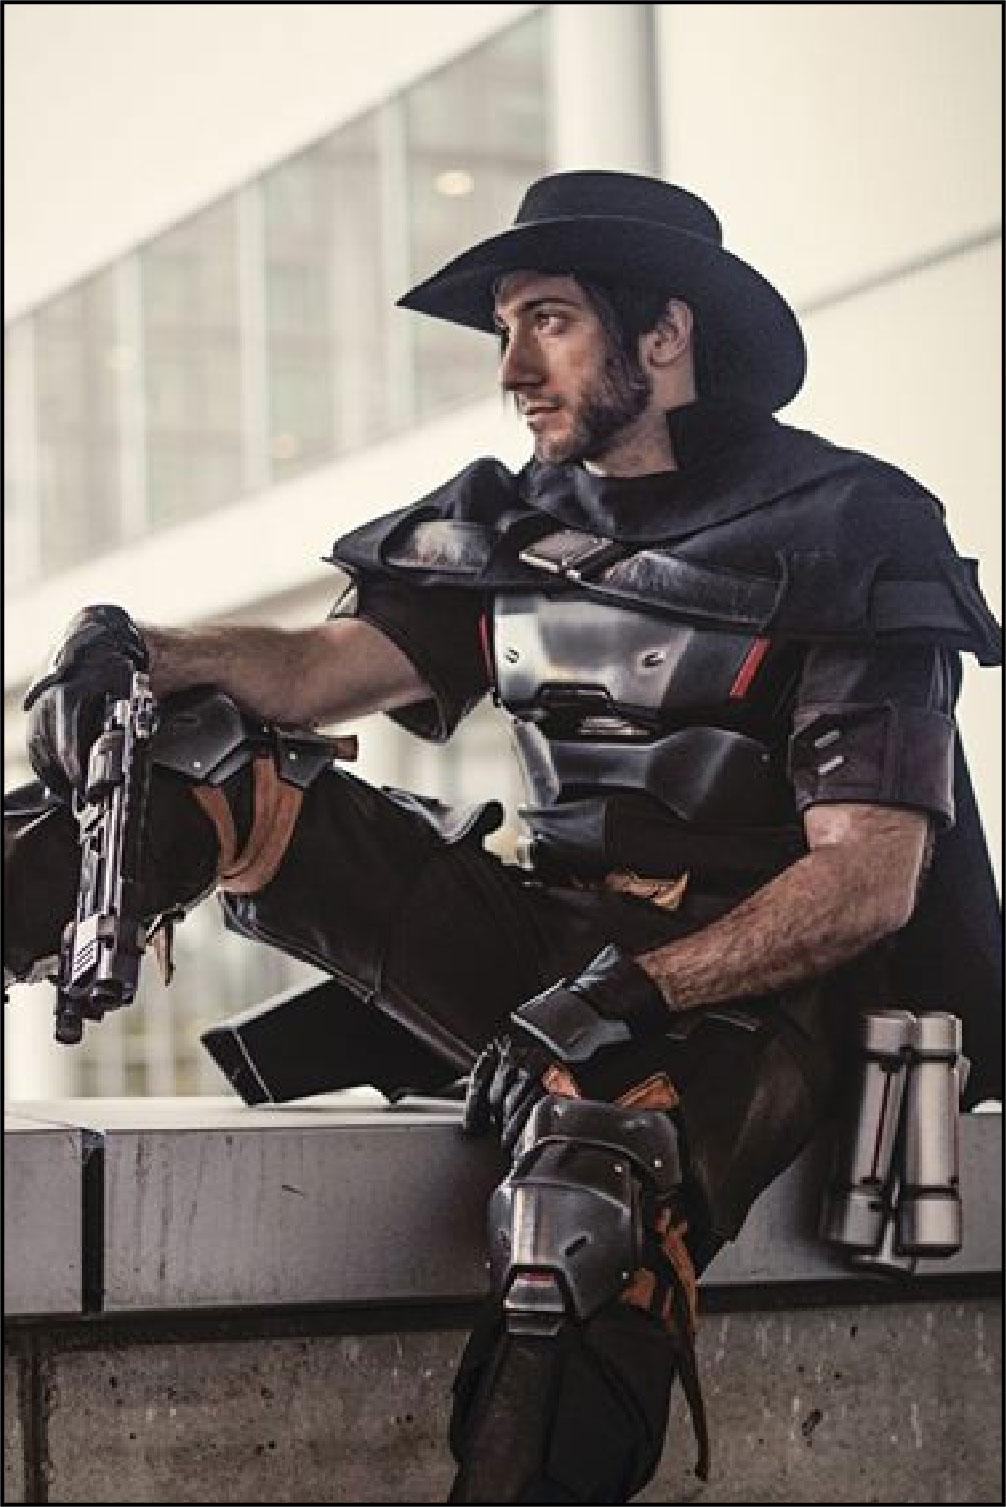 Overwatch: Blackwatch McCree